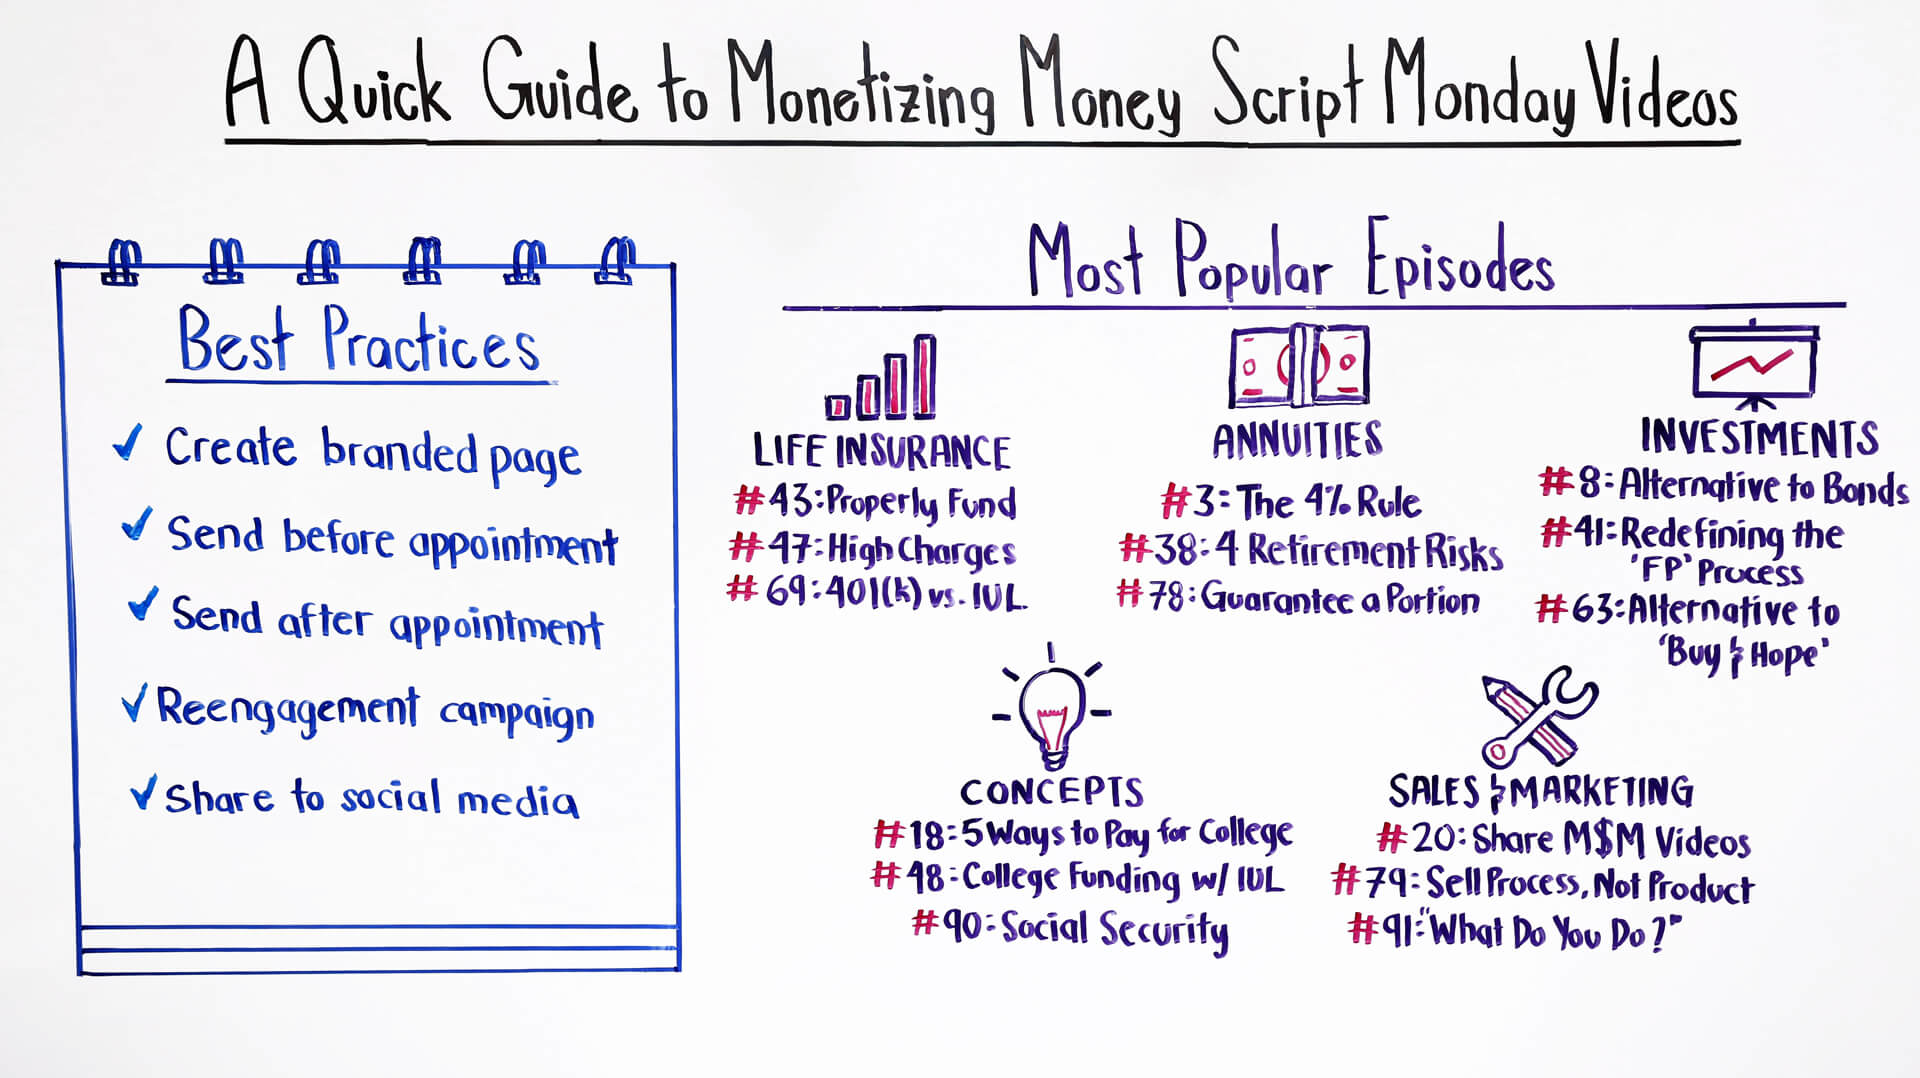 a quick guide to monetizing money script monday